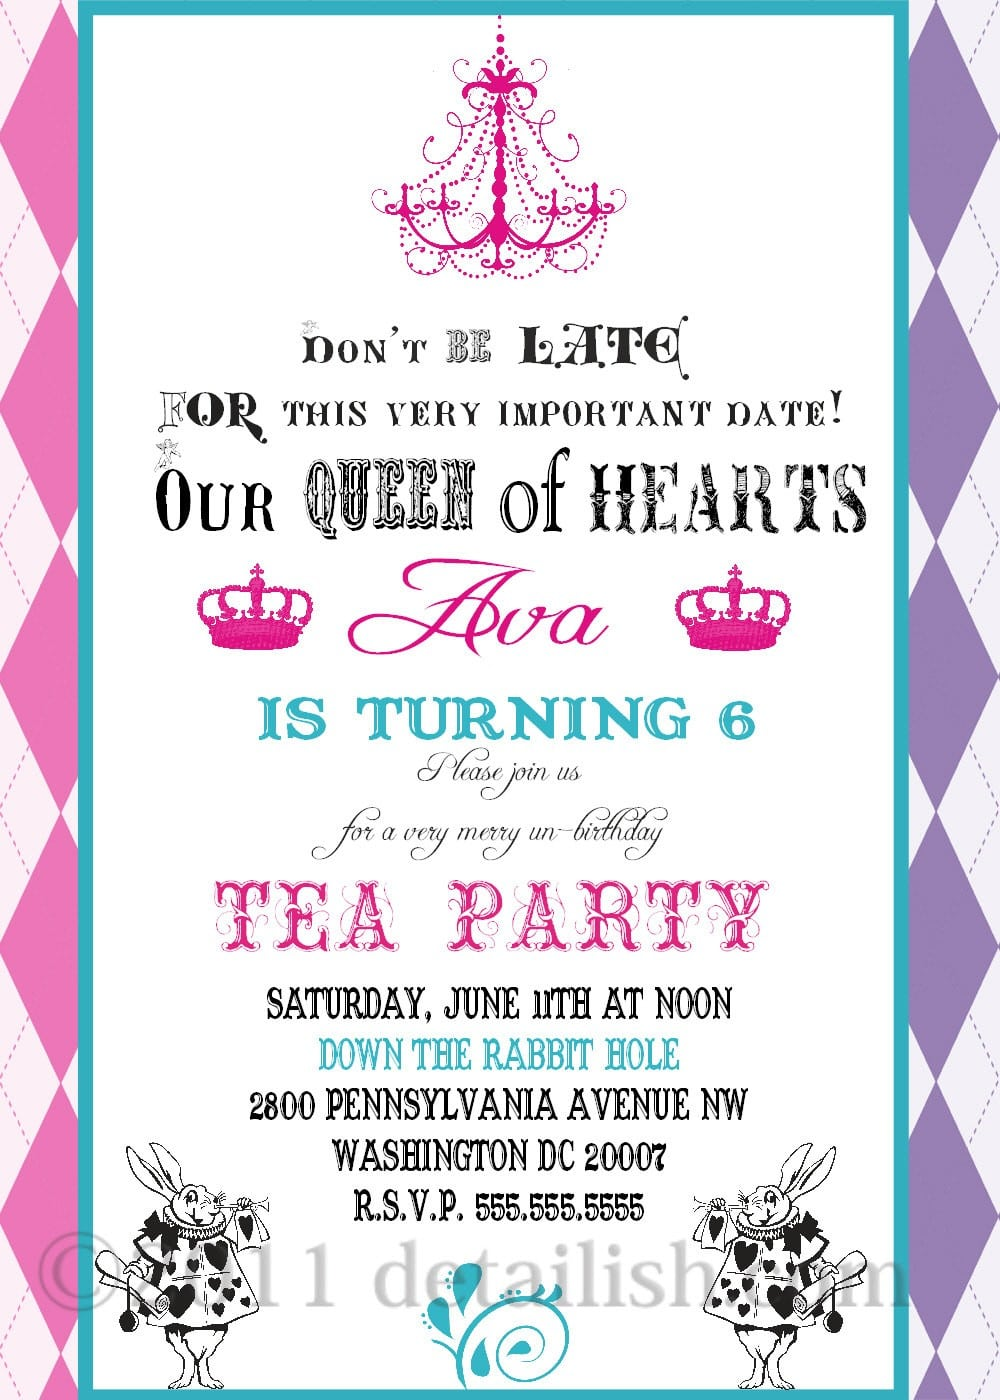 Birthday Invites  Awesome Party Invitations Wording Celebrate